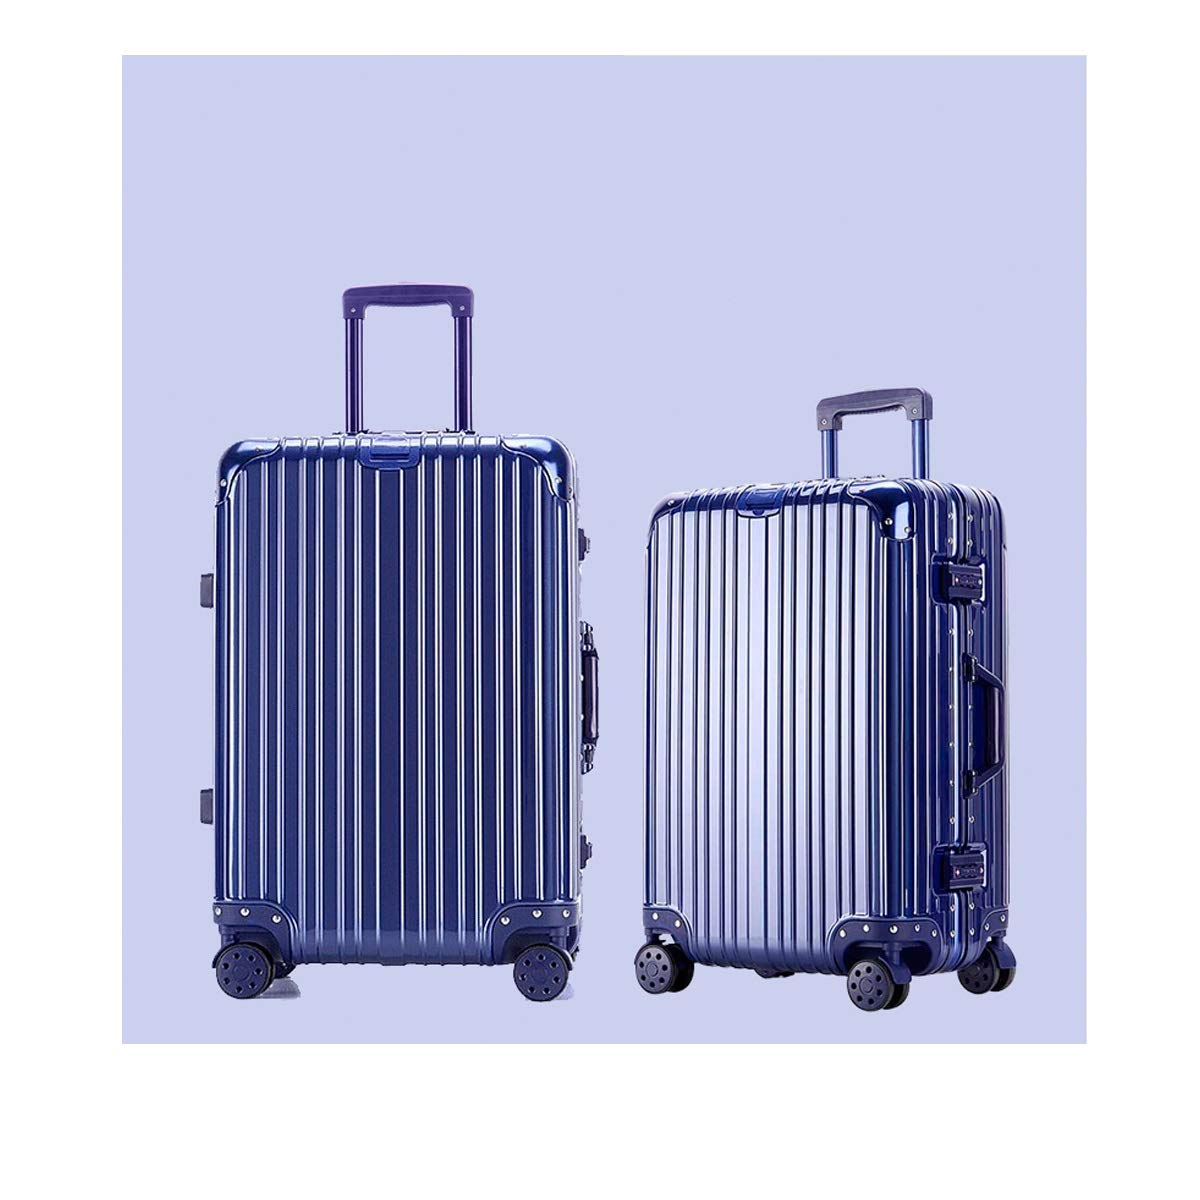 Color : Blue, Size : 24 Carry-on Luggage Huijunwenti Hard Rotating Suitcase Best Gift Travel Organizer Simple Silver The Latest Style 20//24 inch Trolley case